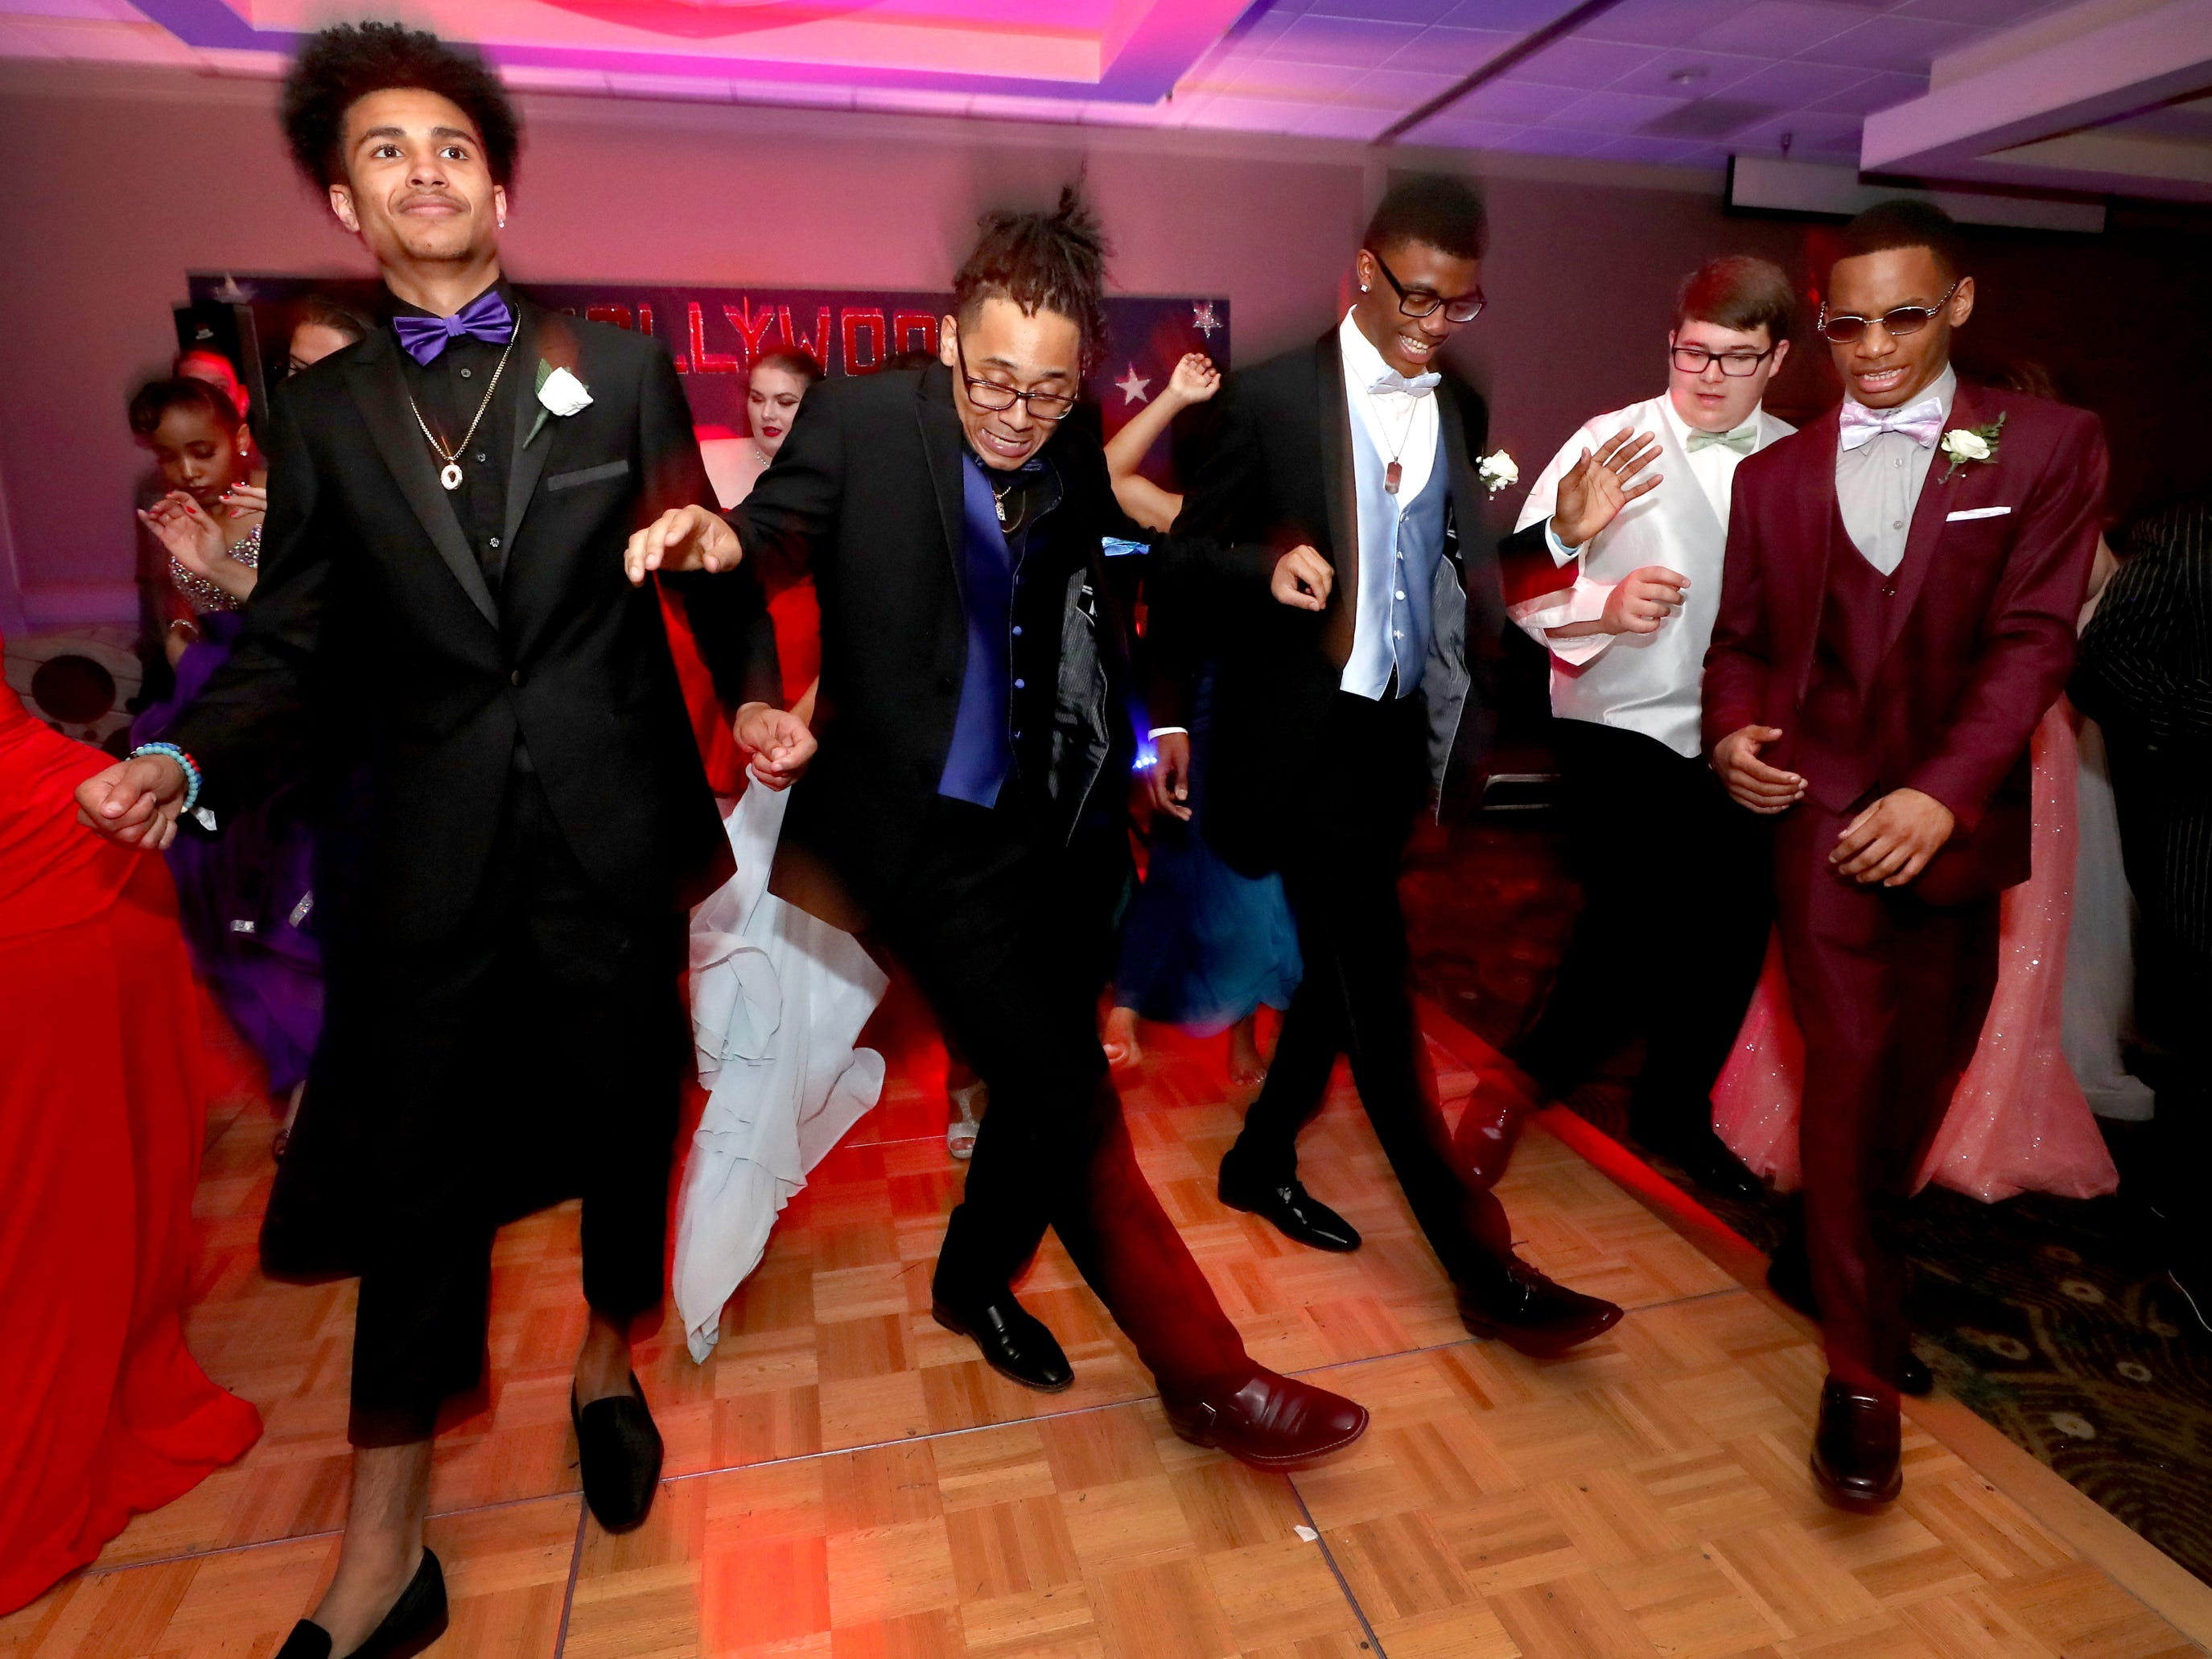 (L to R) Jayden Hernandez, Jamarion Buchanan, Dmarco Haynes, Nate Steinhurst and Aalijah Daniel all dance at Holloway's prom at the DoubleTree on Thursday April 18, 2019.